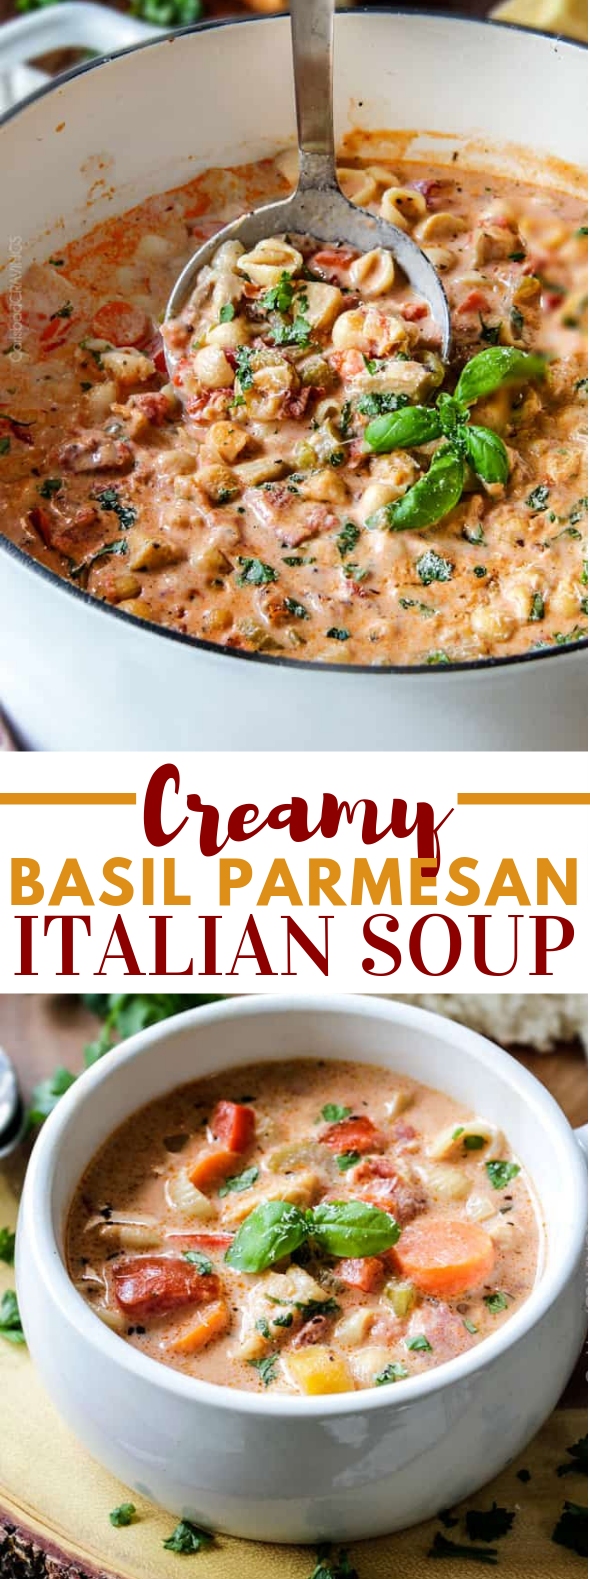 CREAMY ITALIAN SOUP #dinner #easy